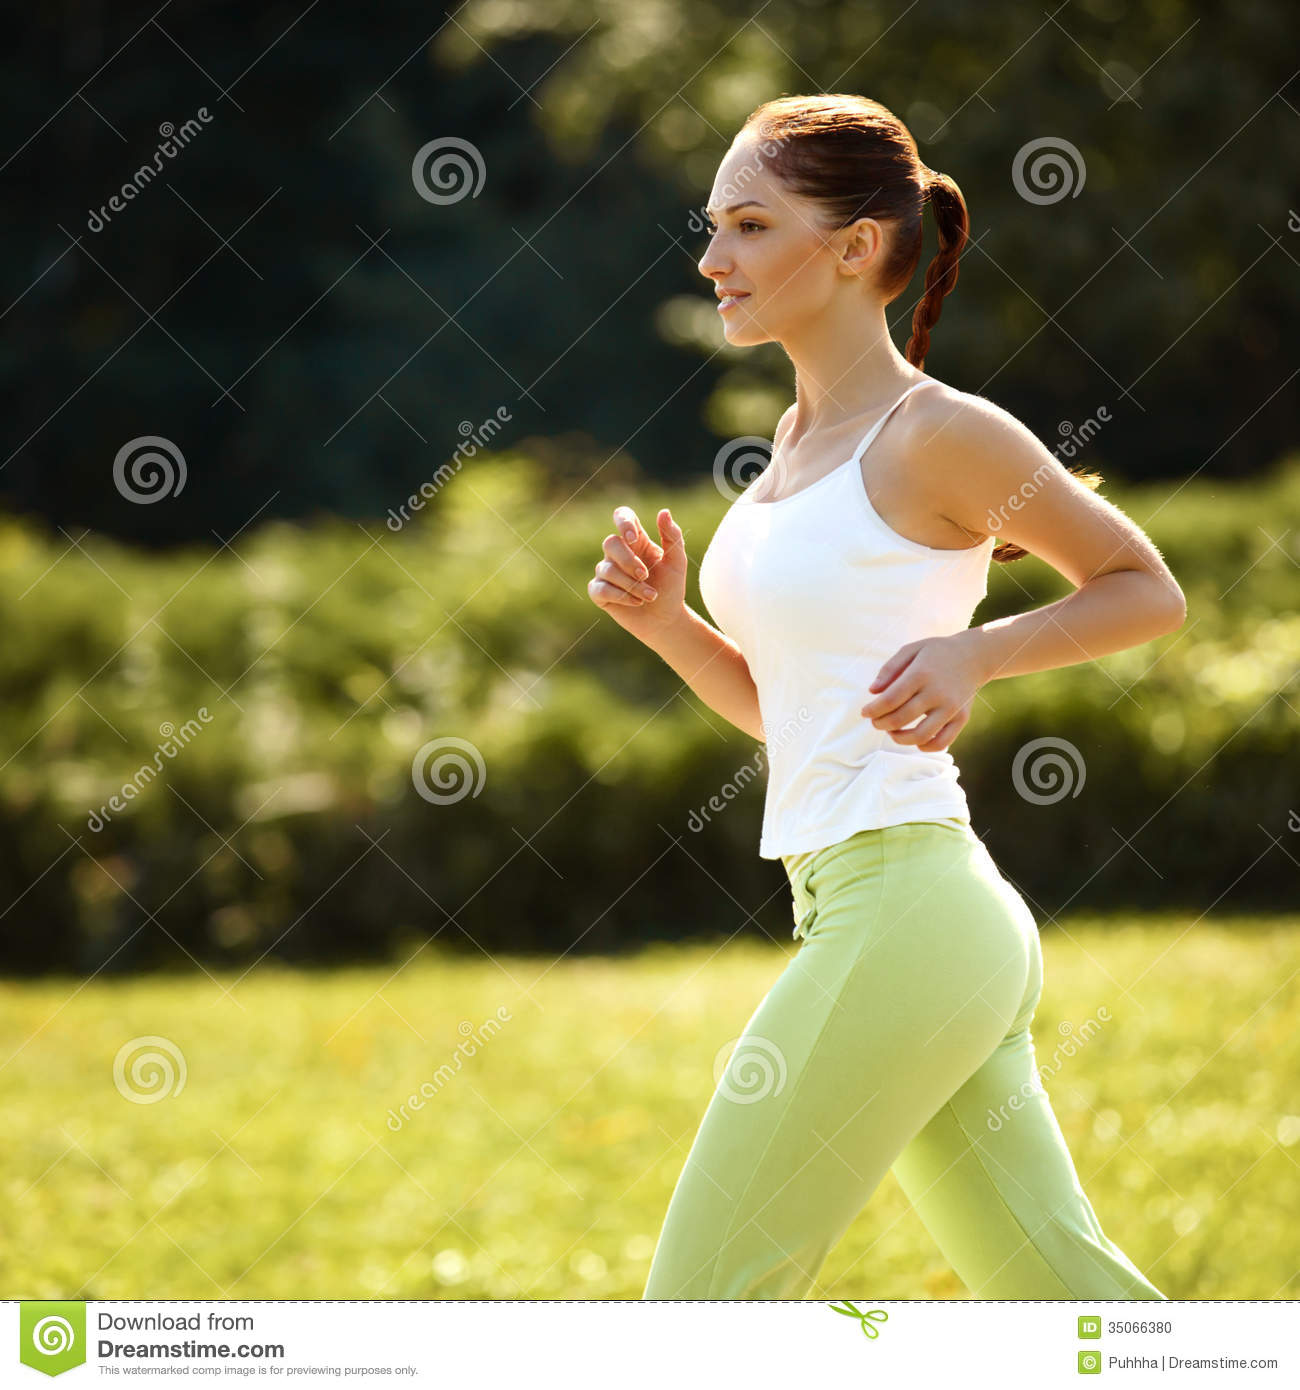 icdn.ru girl 2 Athletic Runner Training in a park for Marathon. Fitness Girl Ru